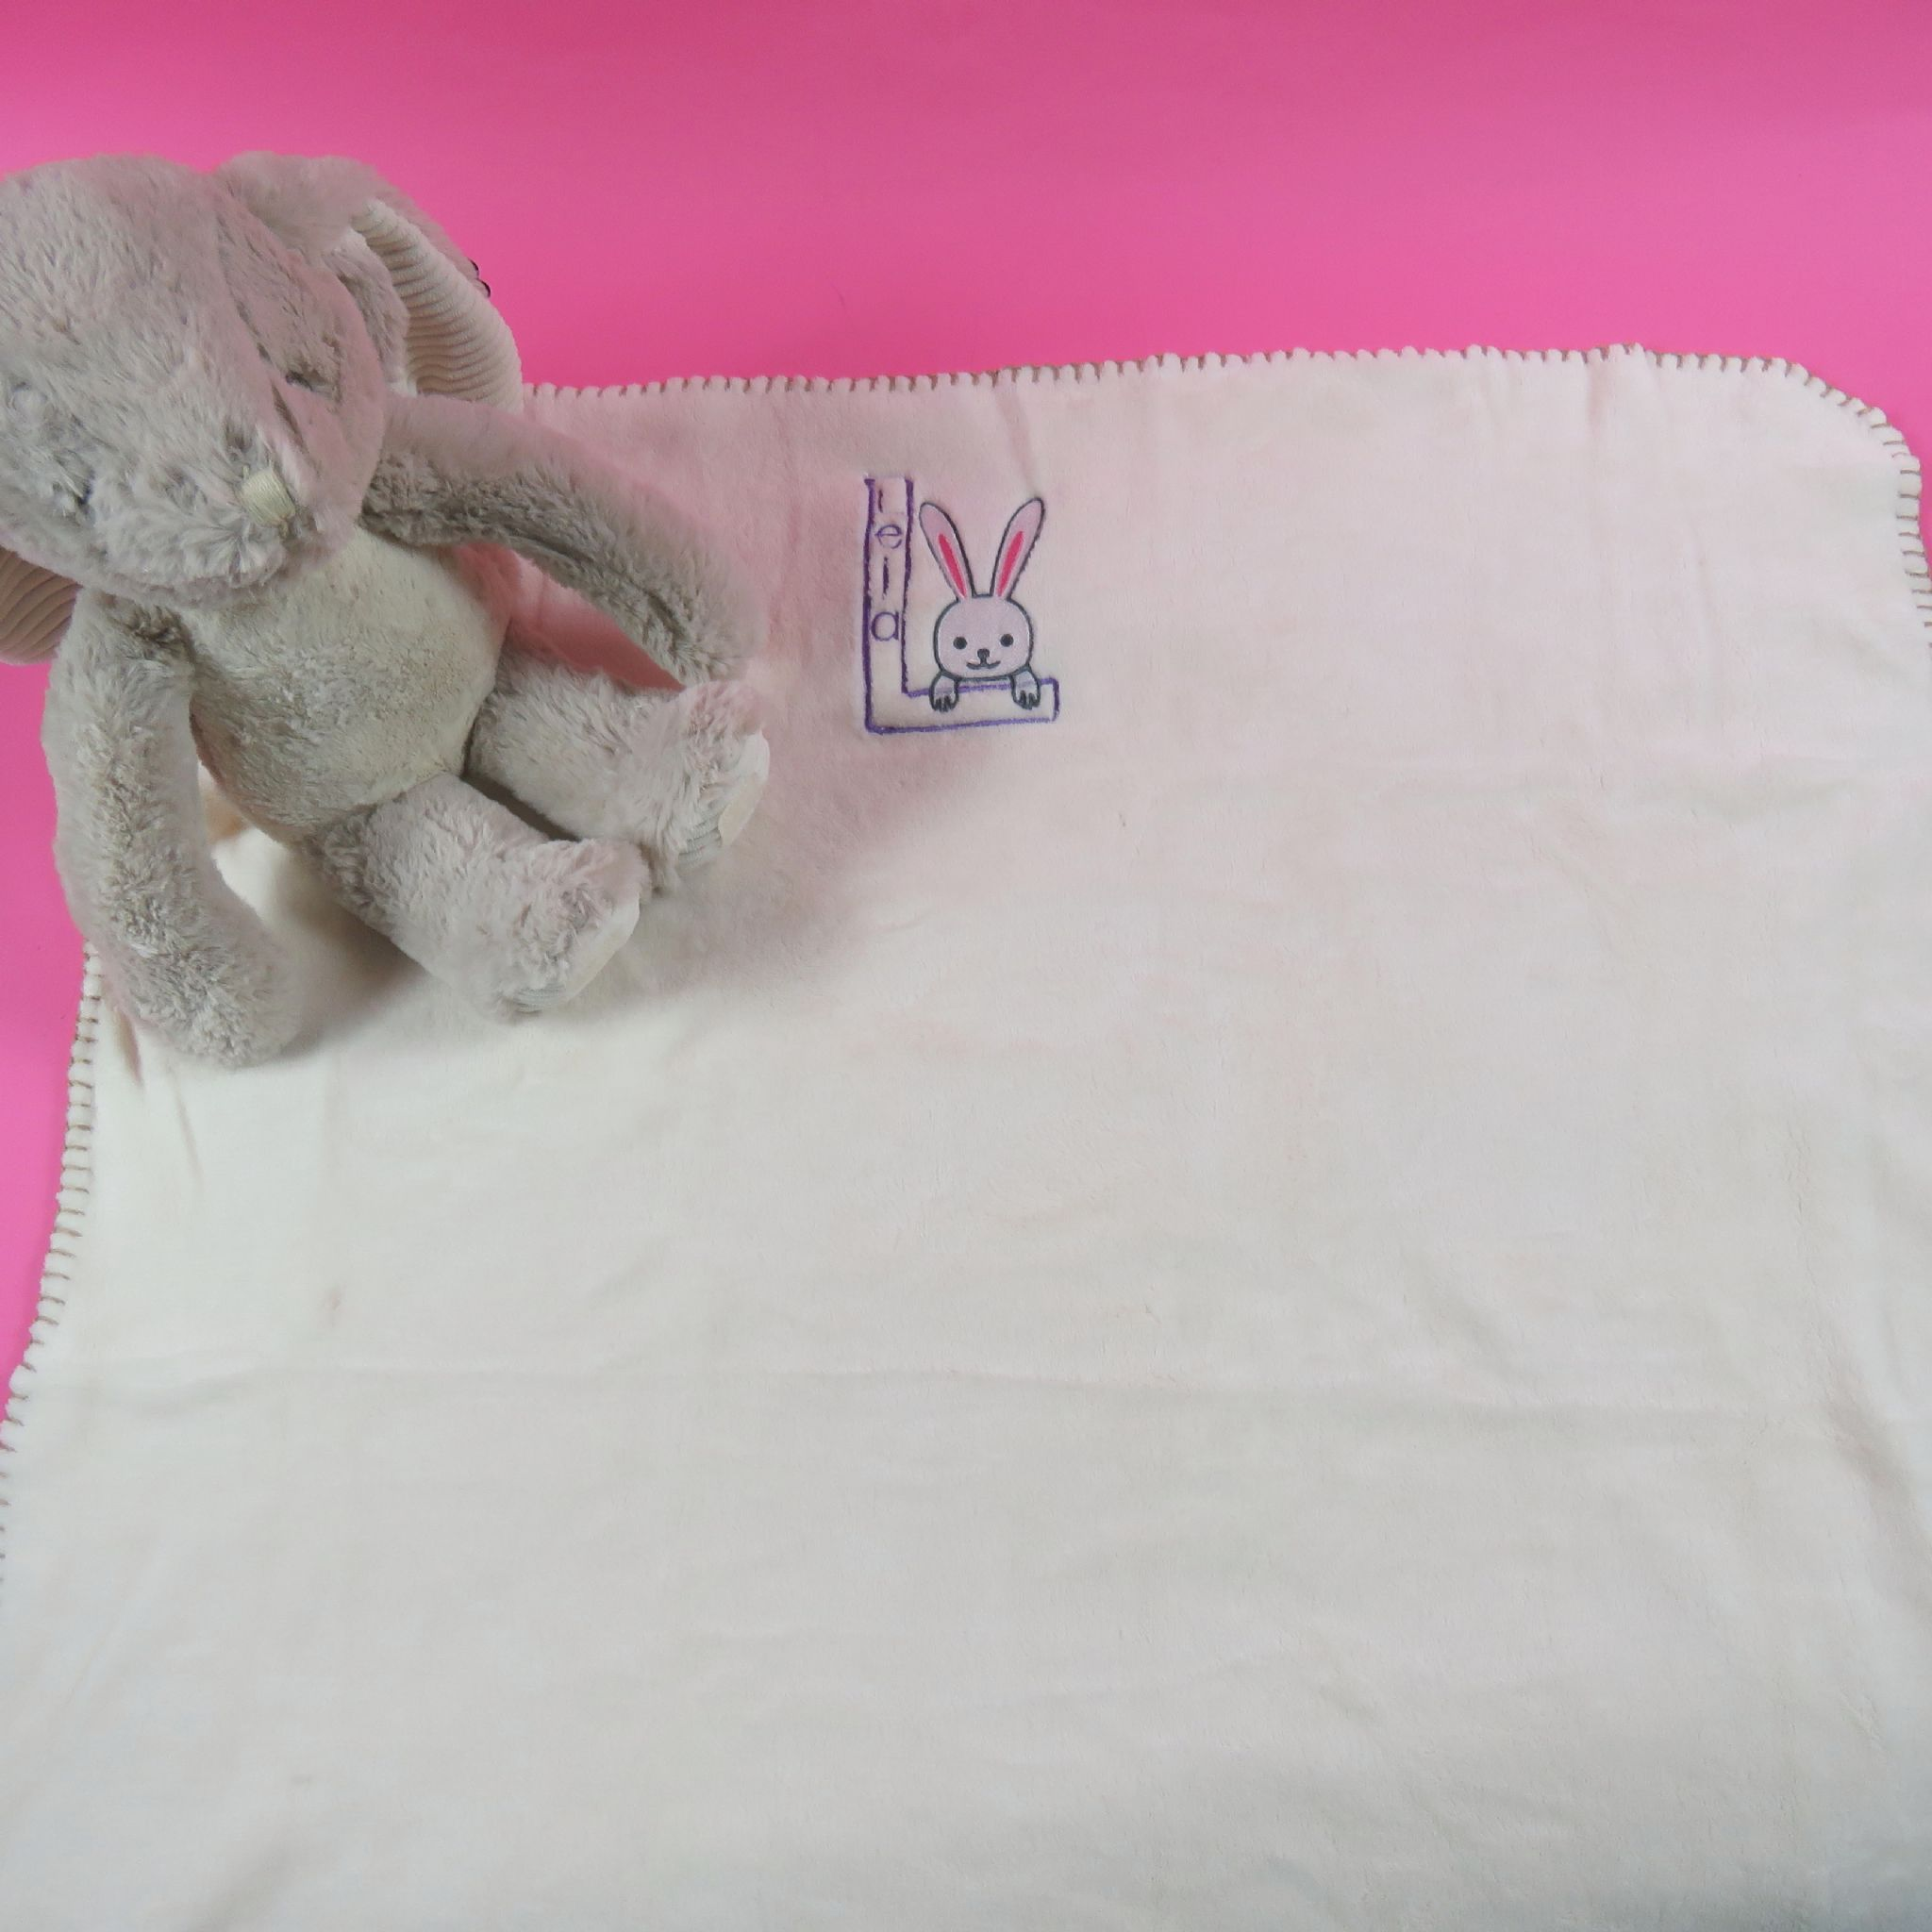 Rabbit soft toy and blanket embroidered new born baby gift bunny personalised rabbit soft toy and blanket embroidered new born baby gift bunny easter present persona negle Gallery